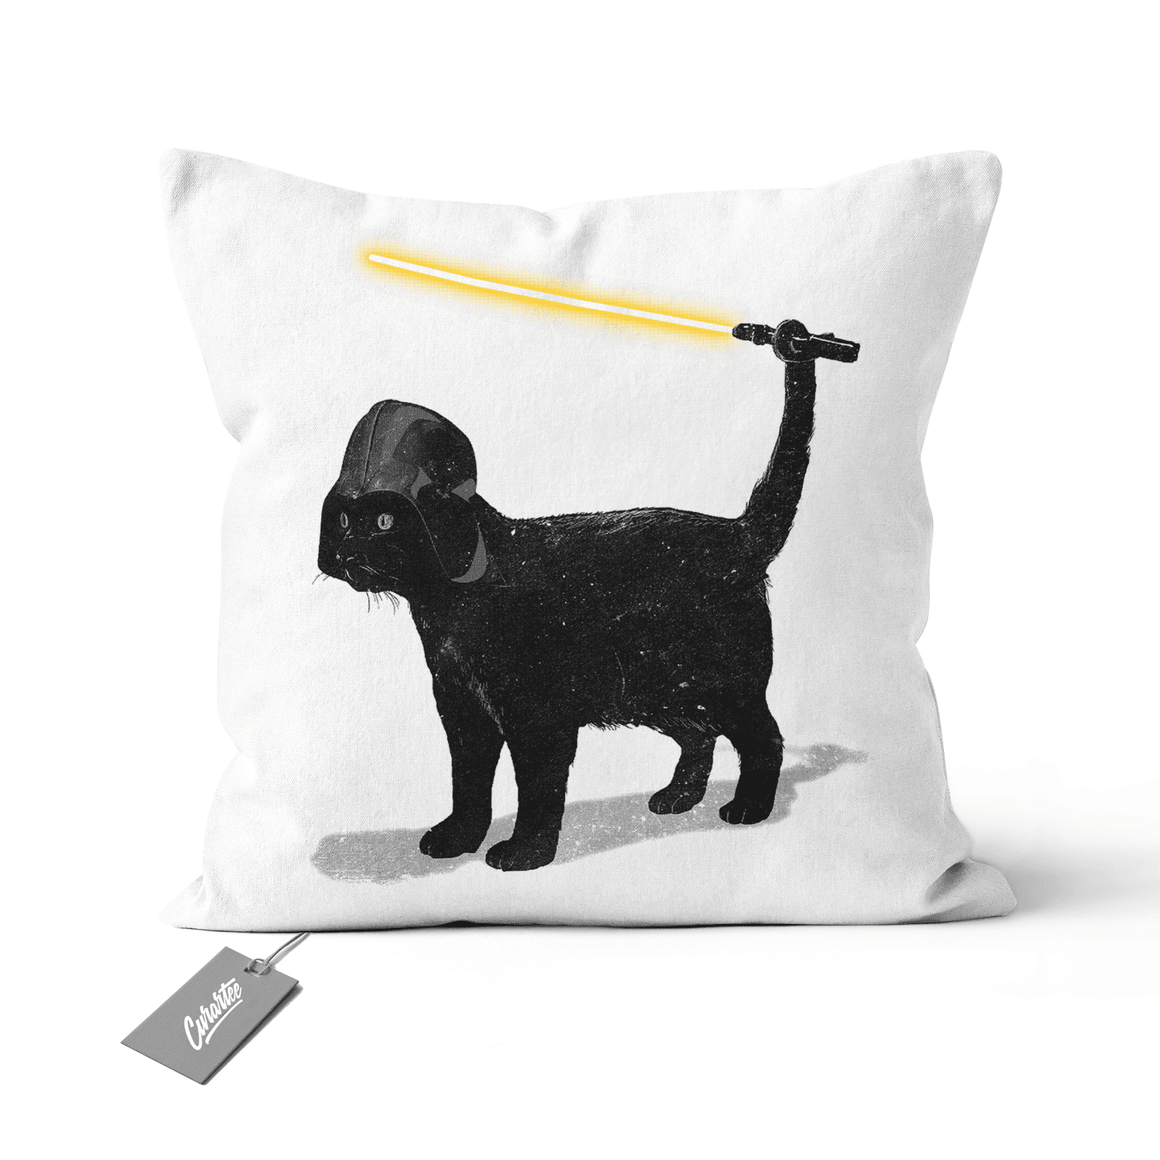 Cat Vader Cushion - Premium Artwear Curartee